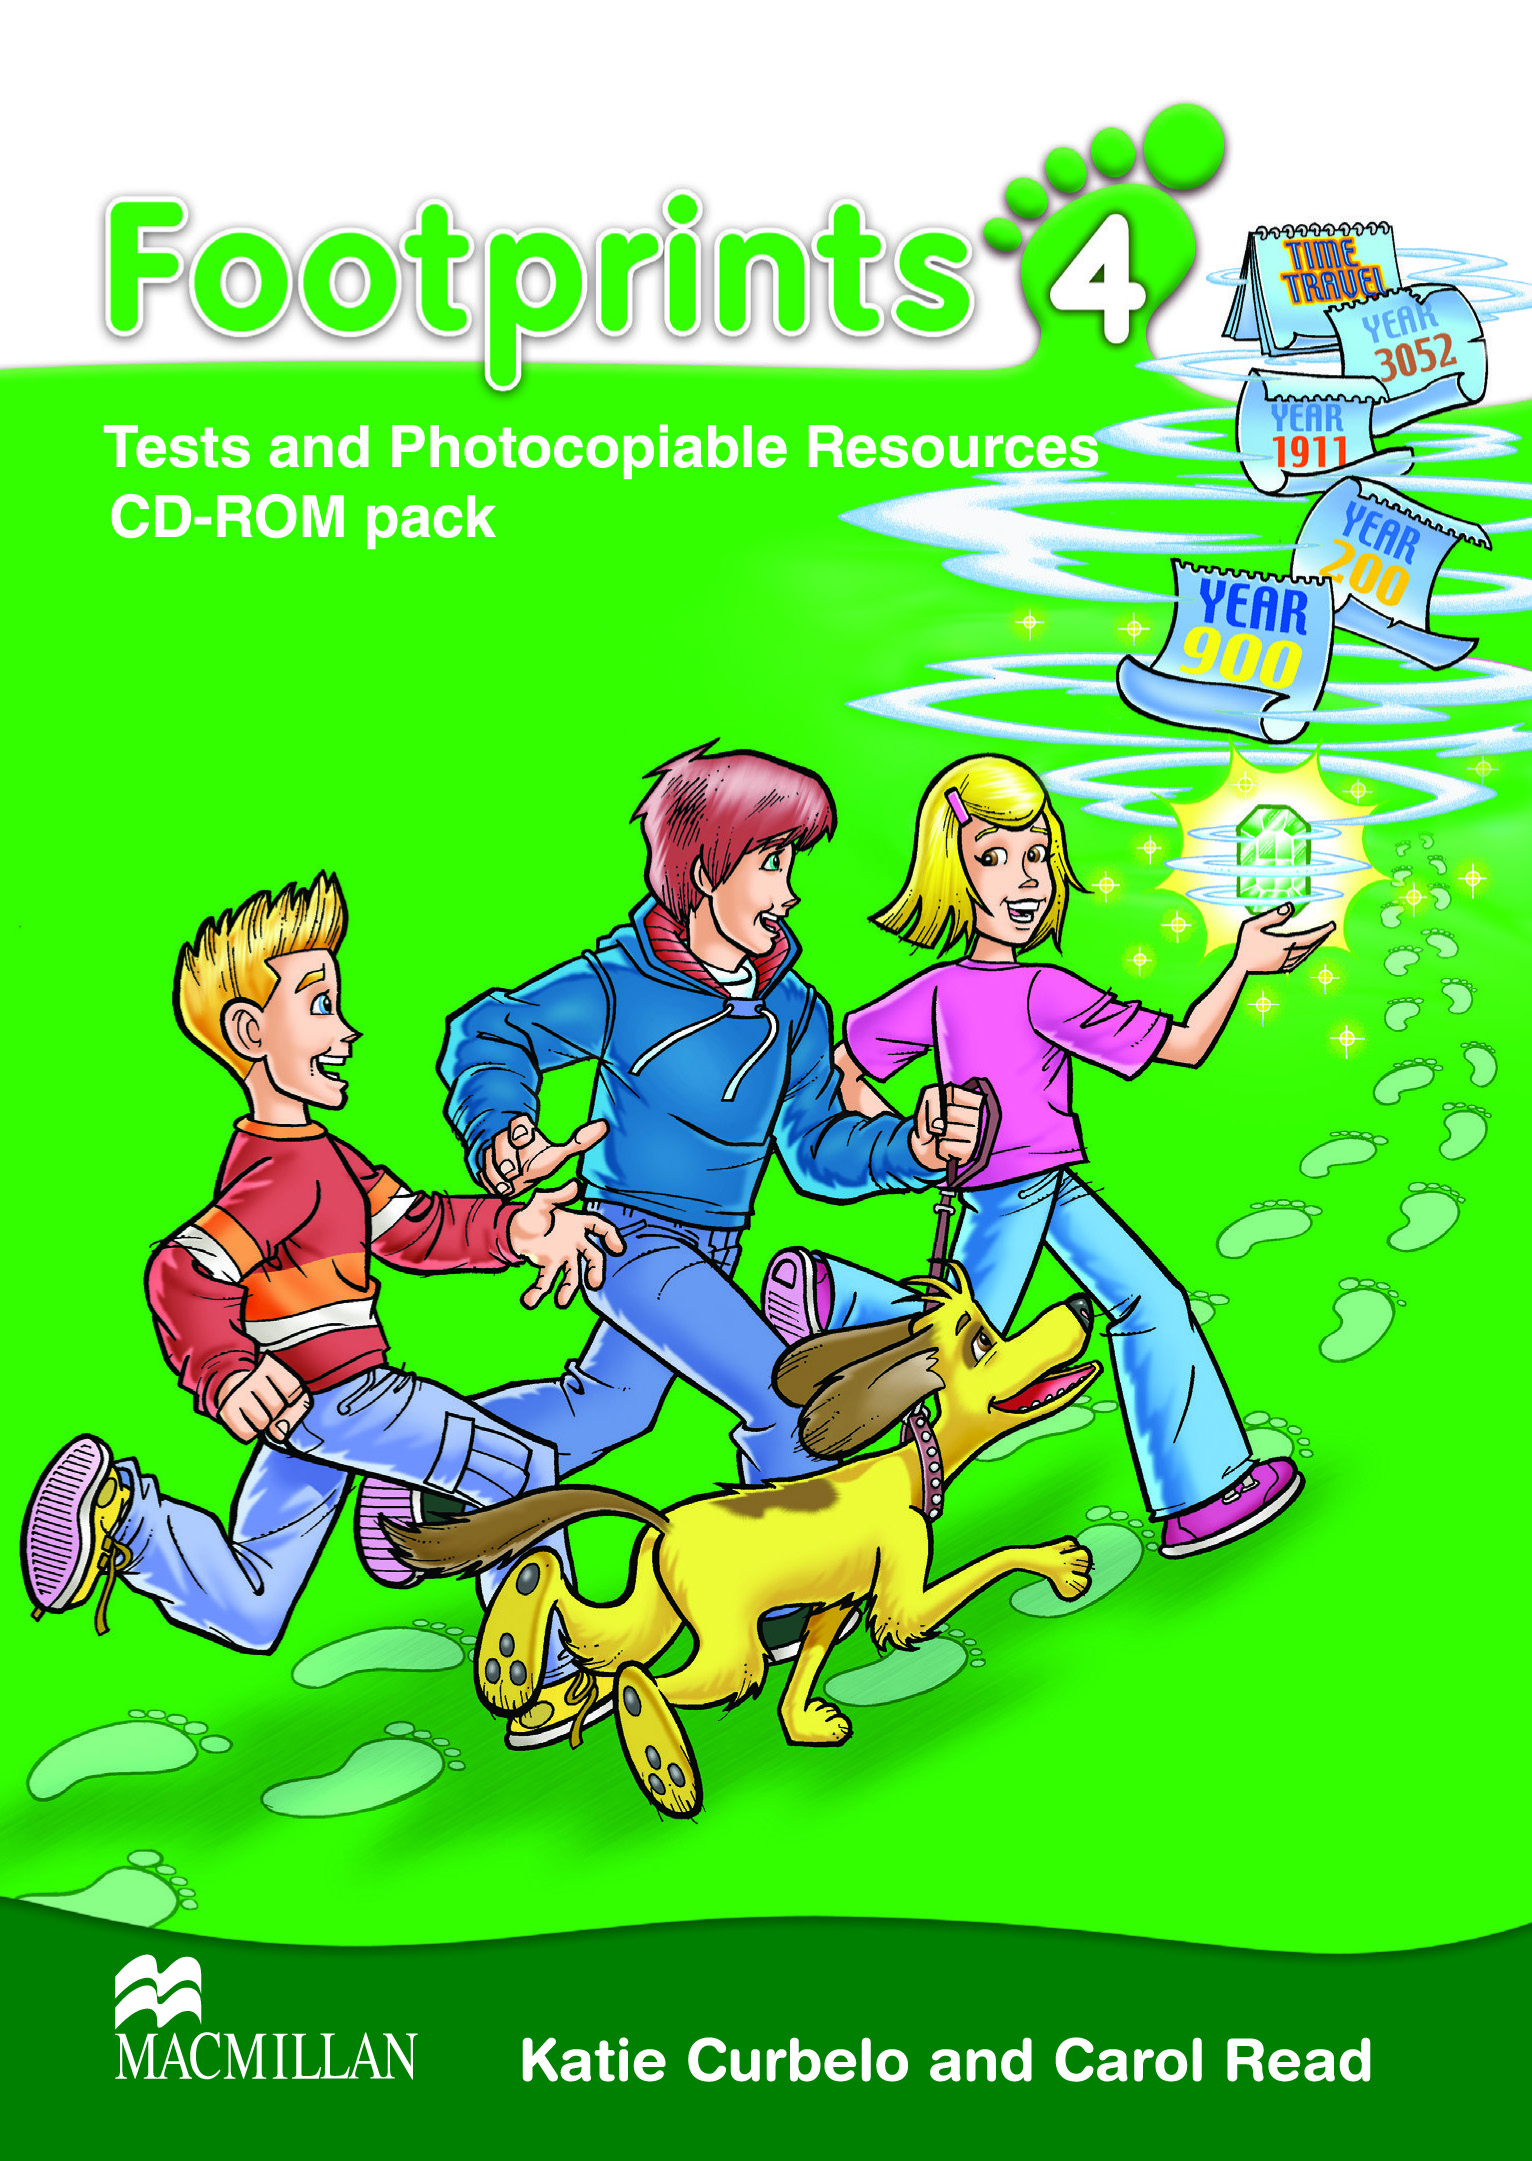 Footprints 4 Tests and Photocopiable Resources CD-ROM Pack